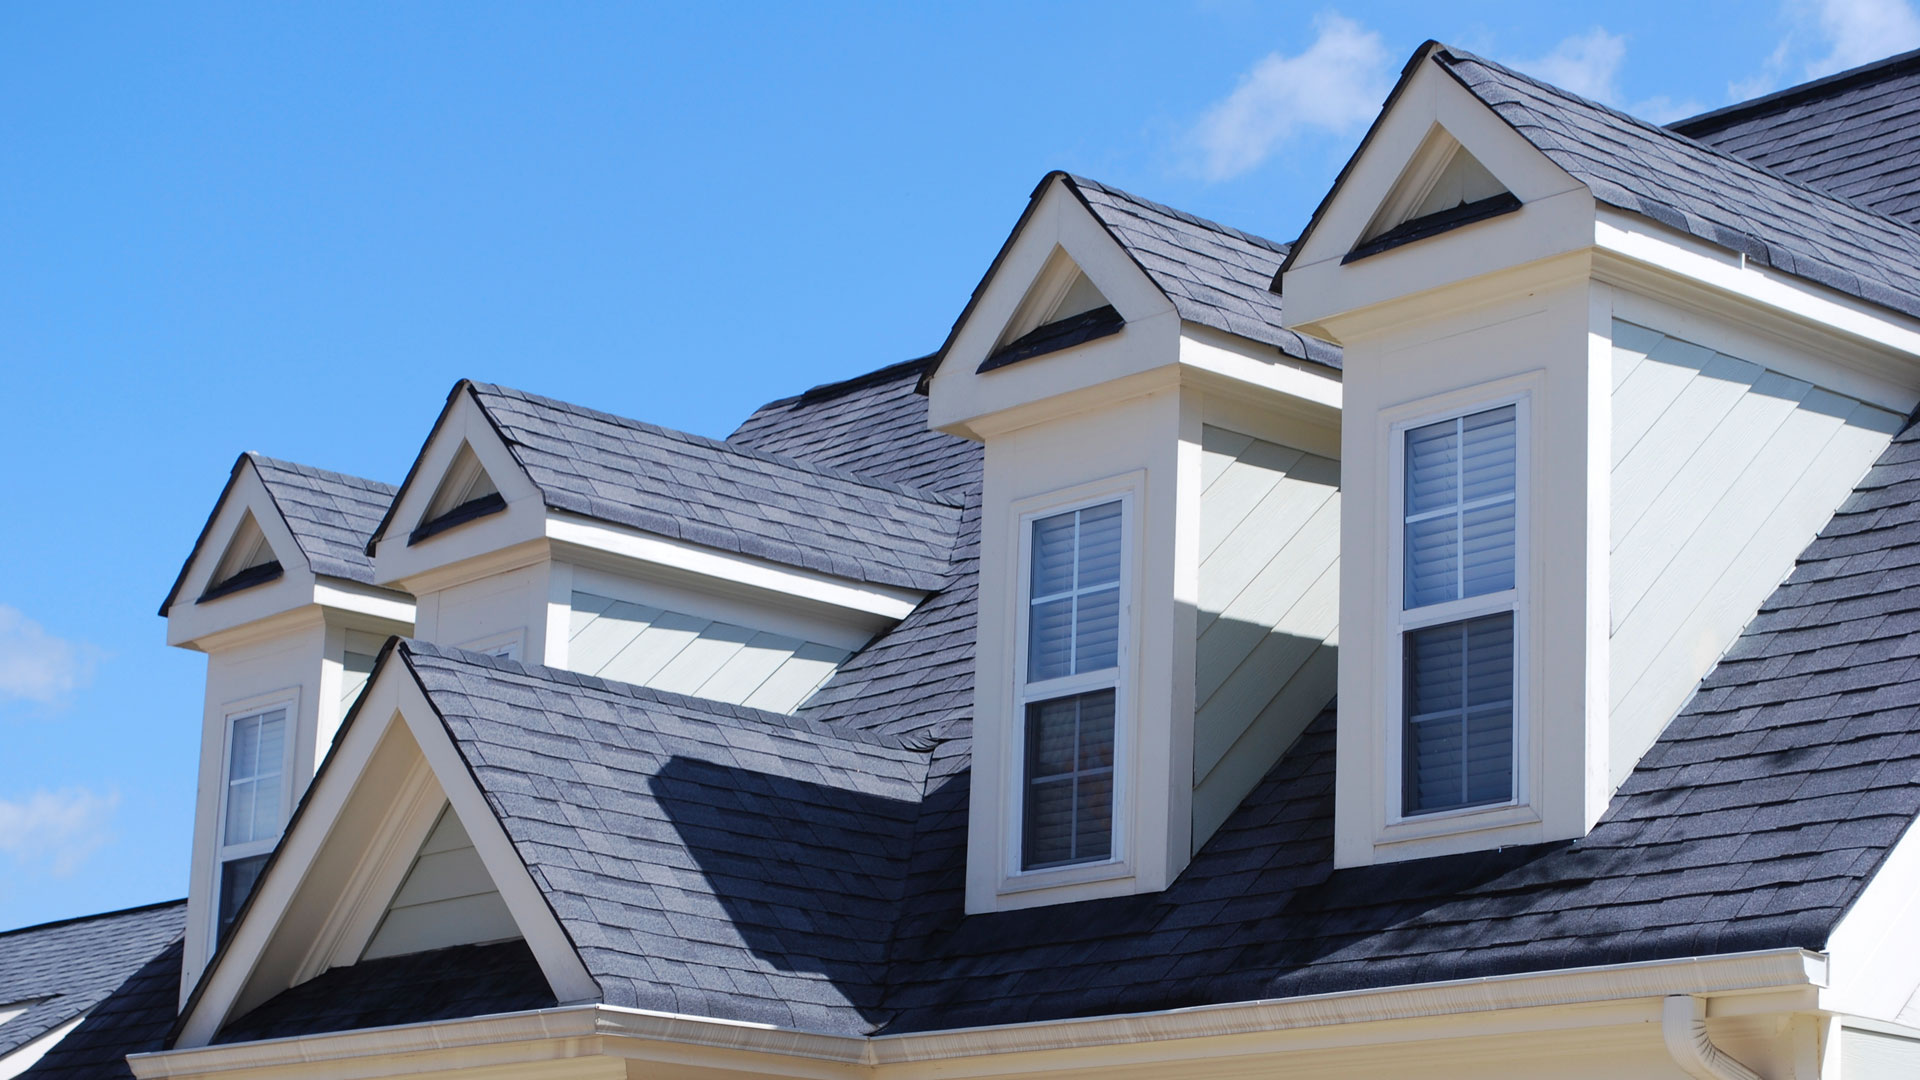 Calgary roofing specialist